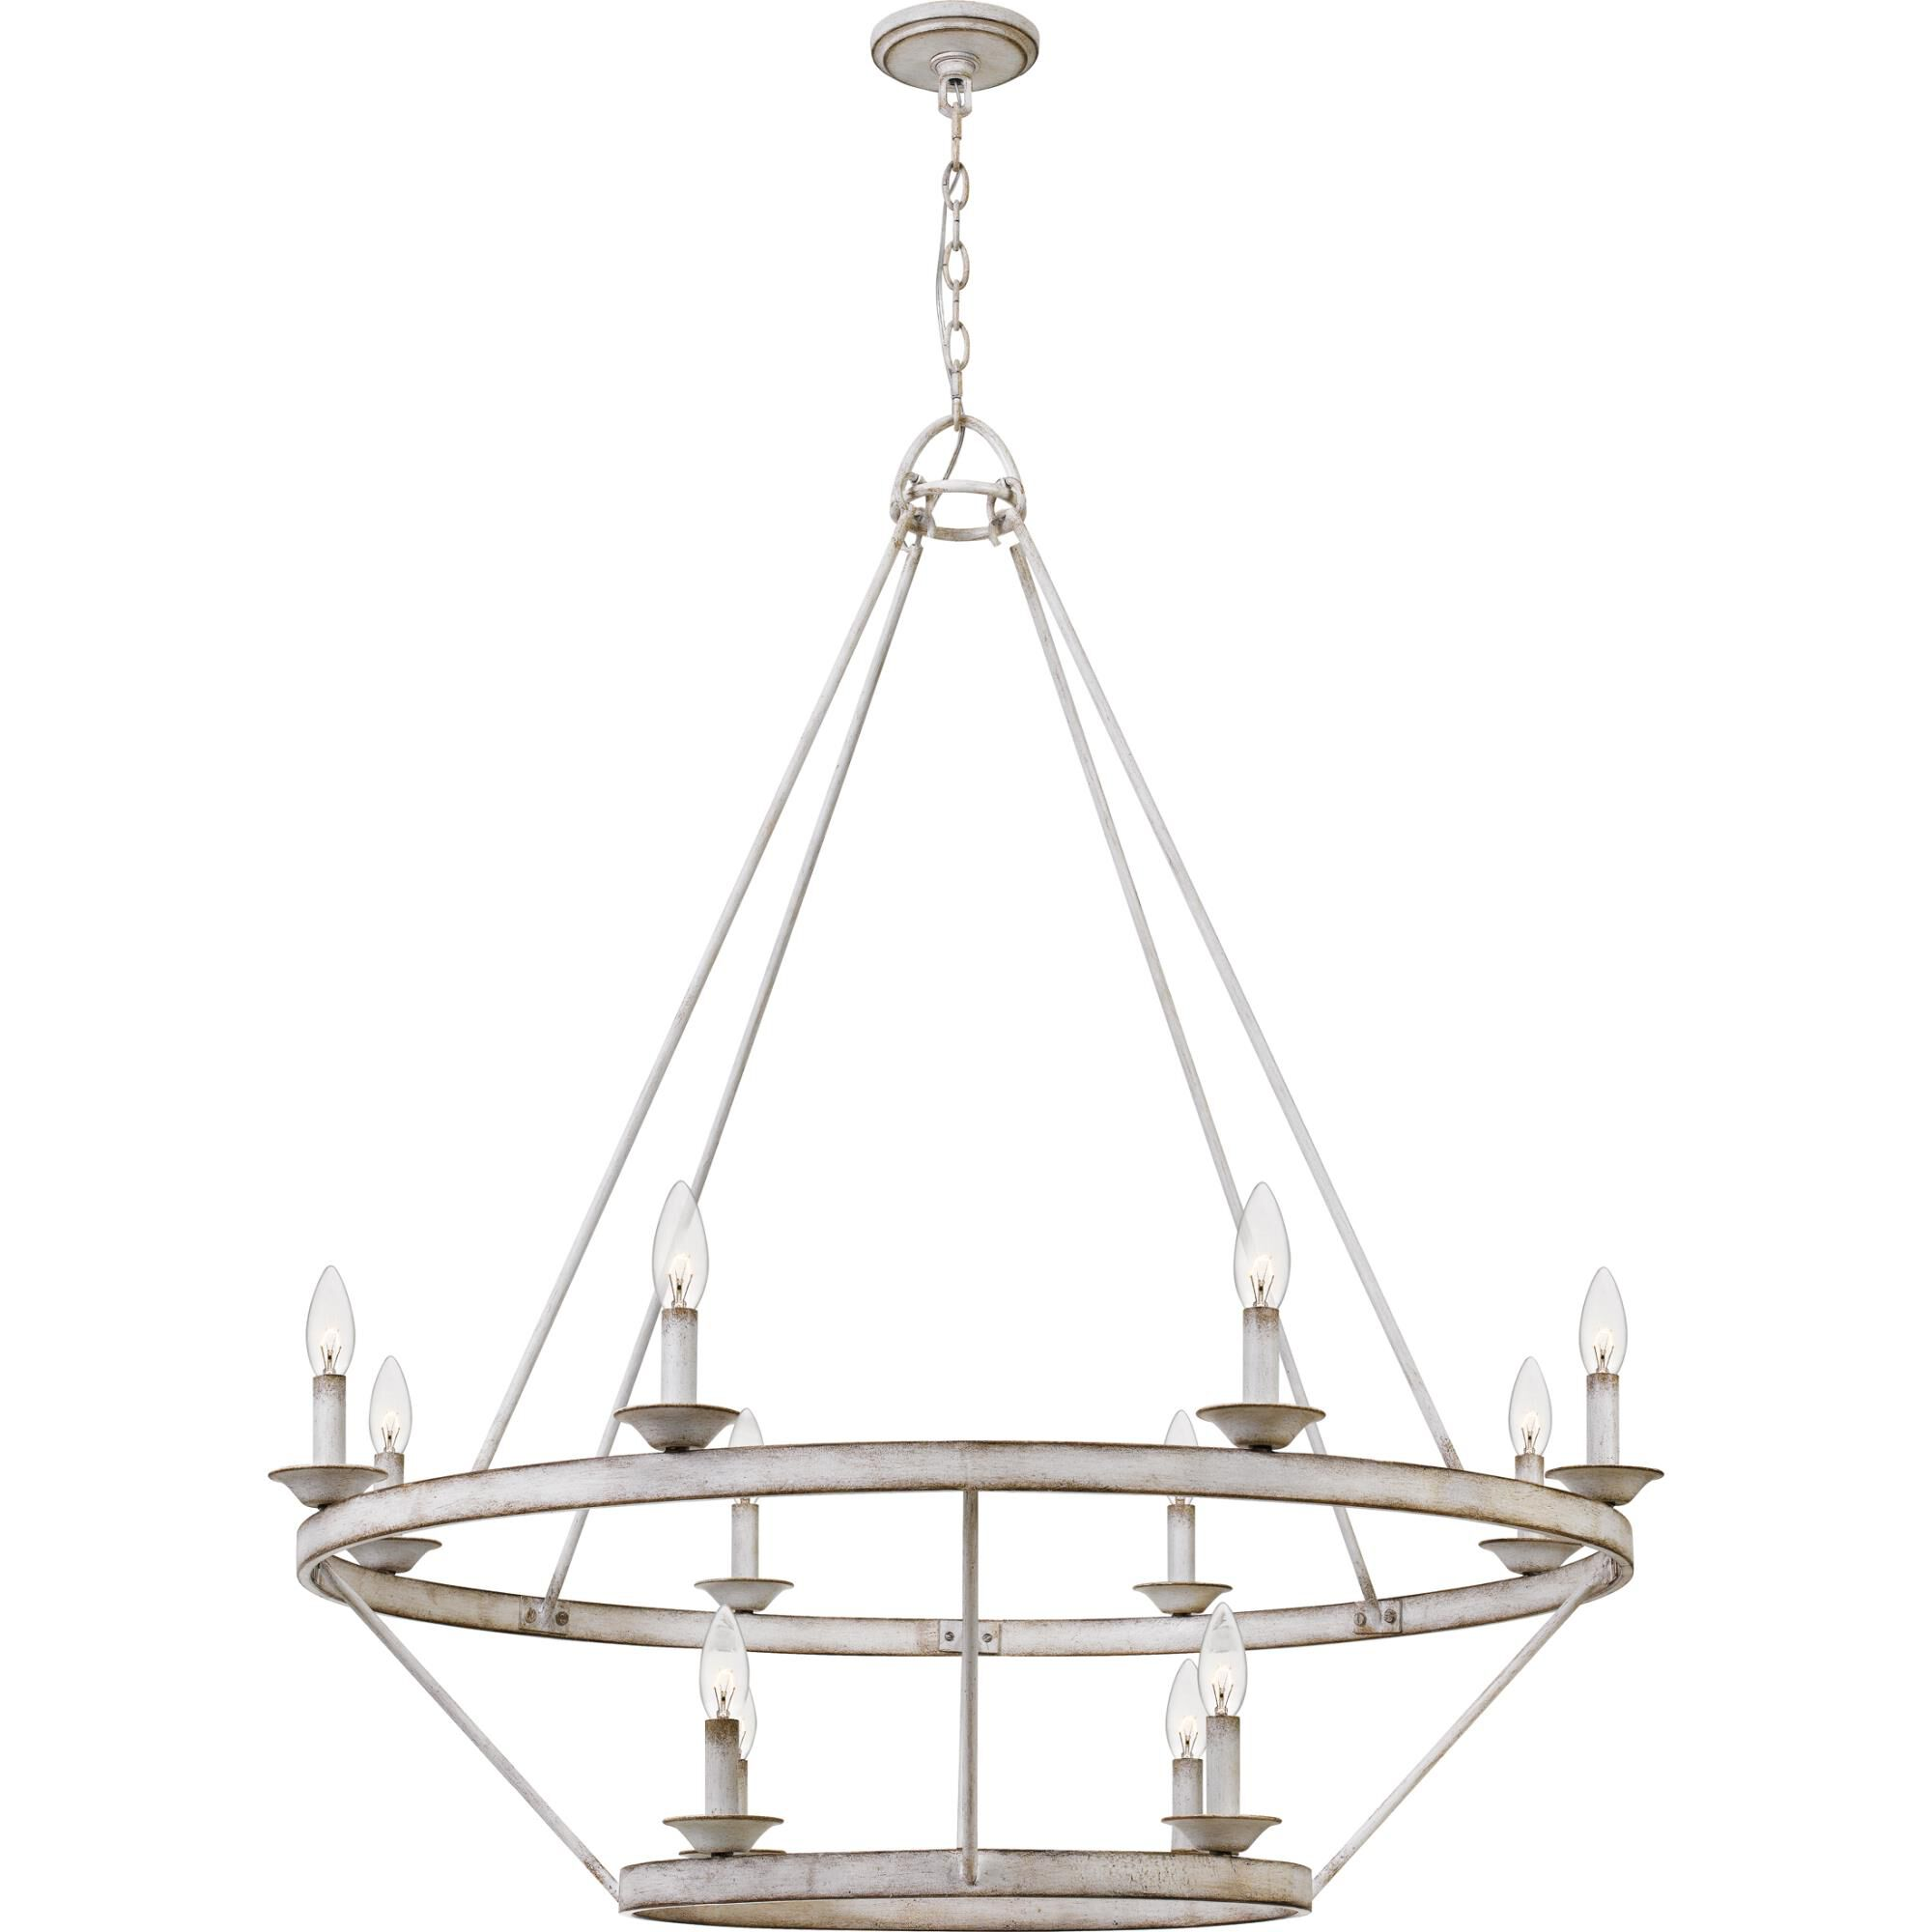 Quoizel Corral 39 Inch 12 Light Chandelier Corral - Crl5012awh - Transitional